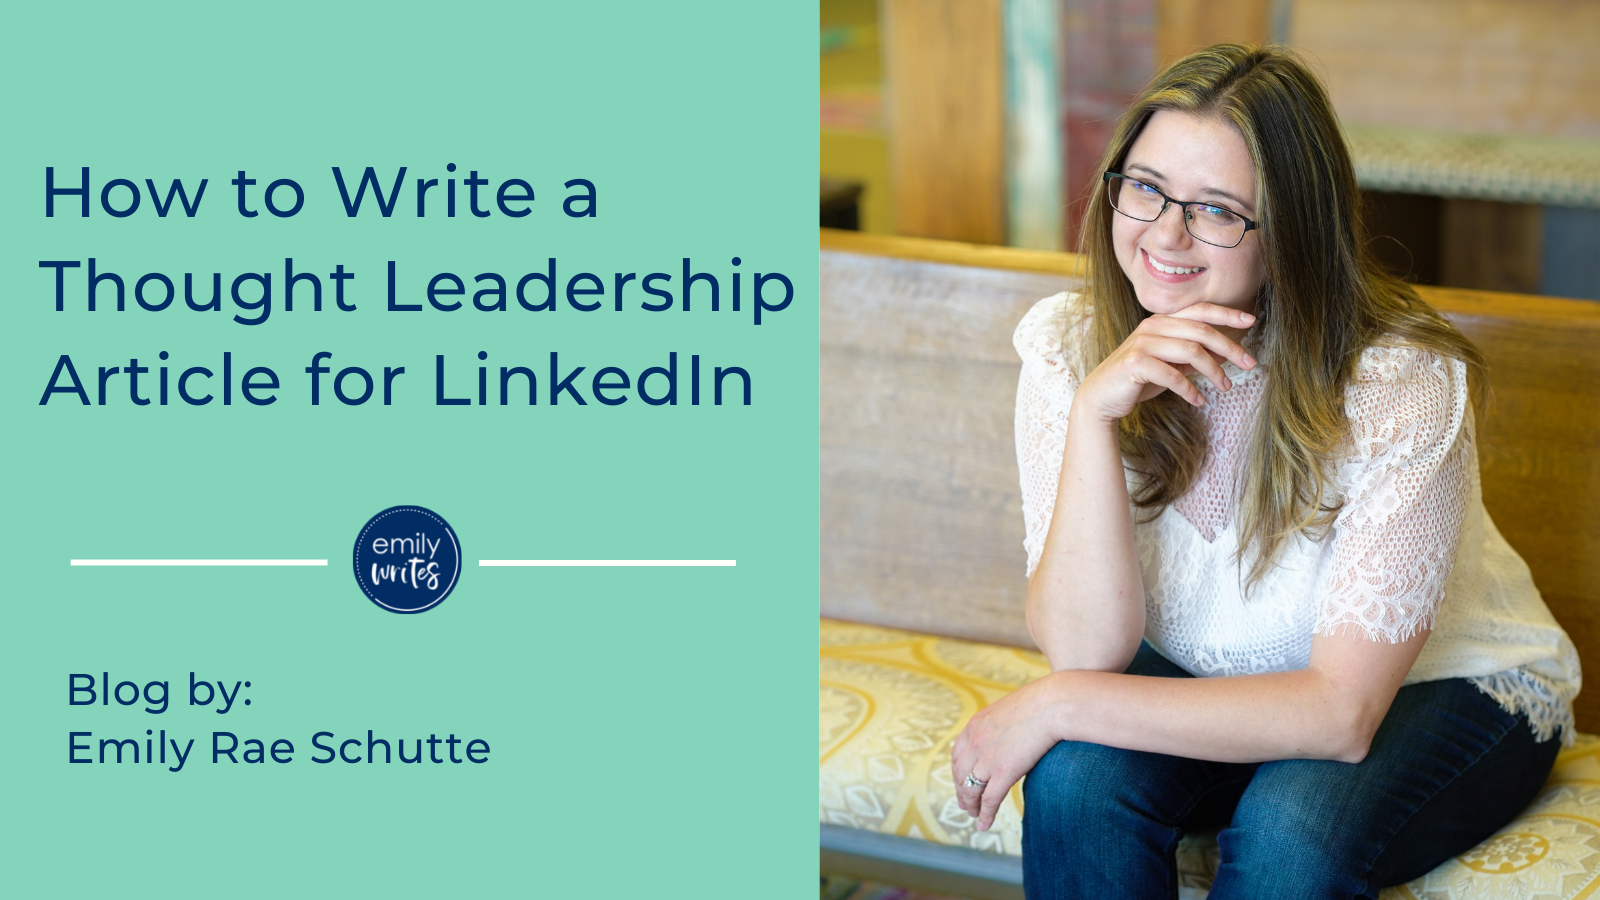 How to Write a Thought Leadership Article for LinkedIn